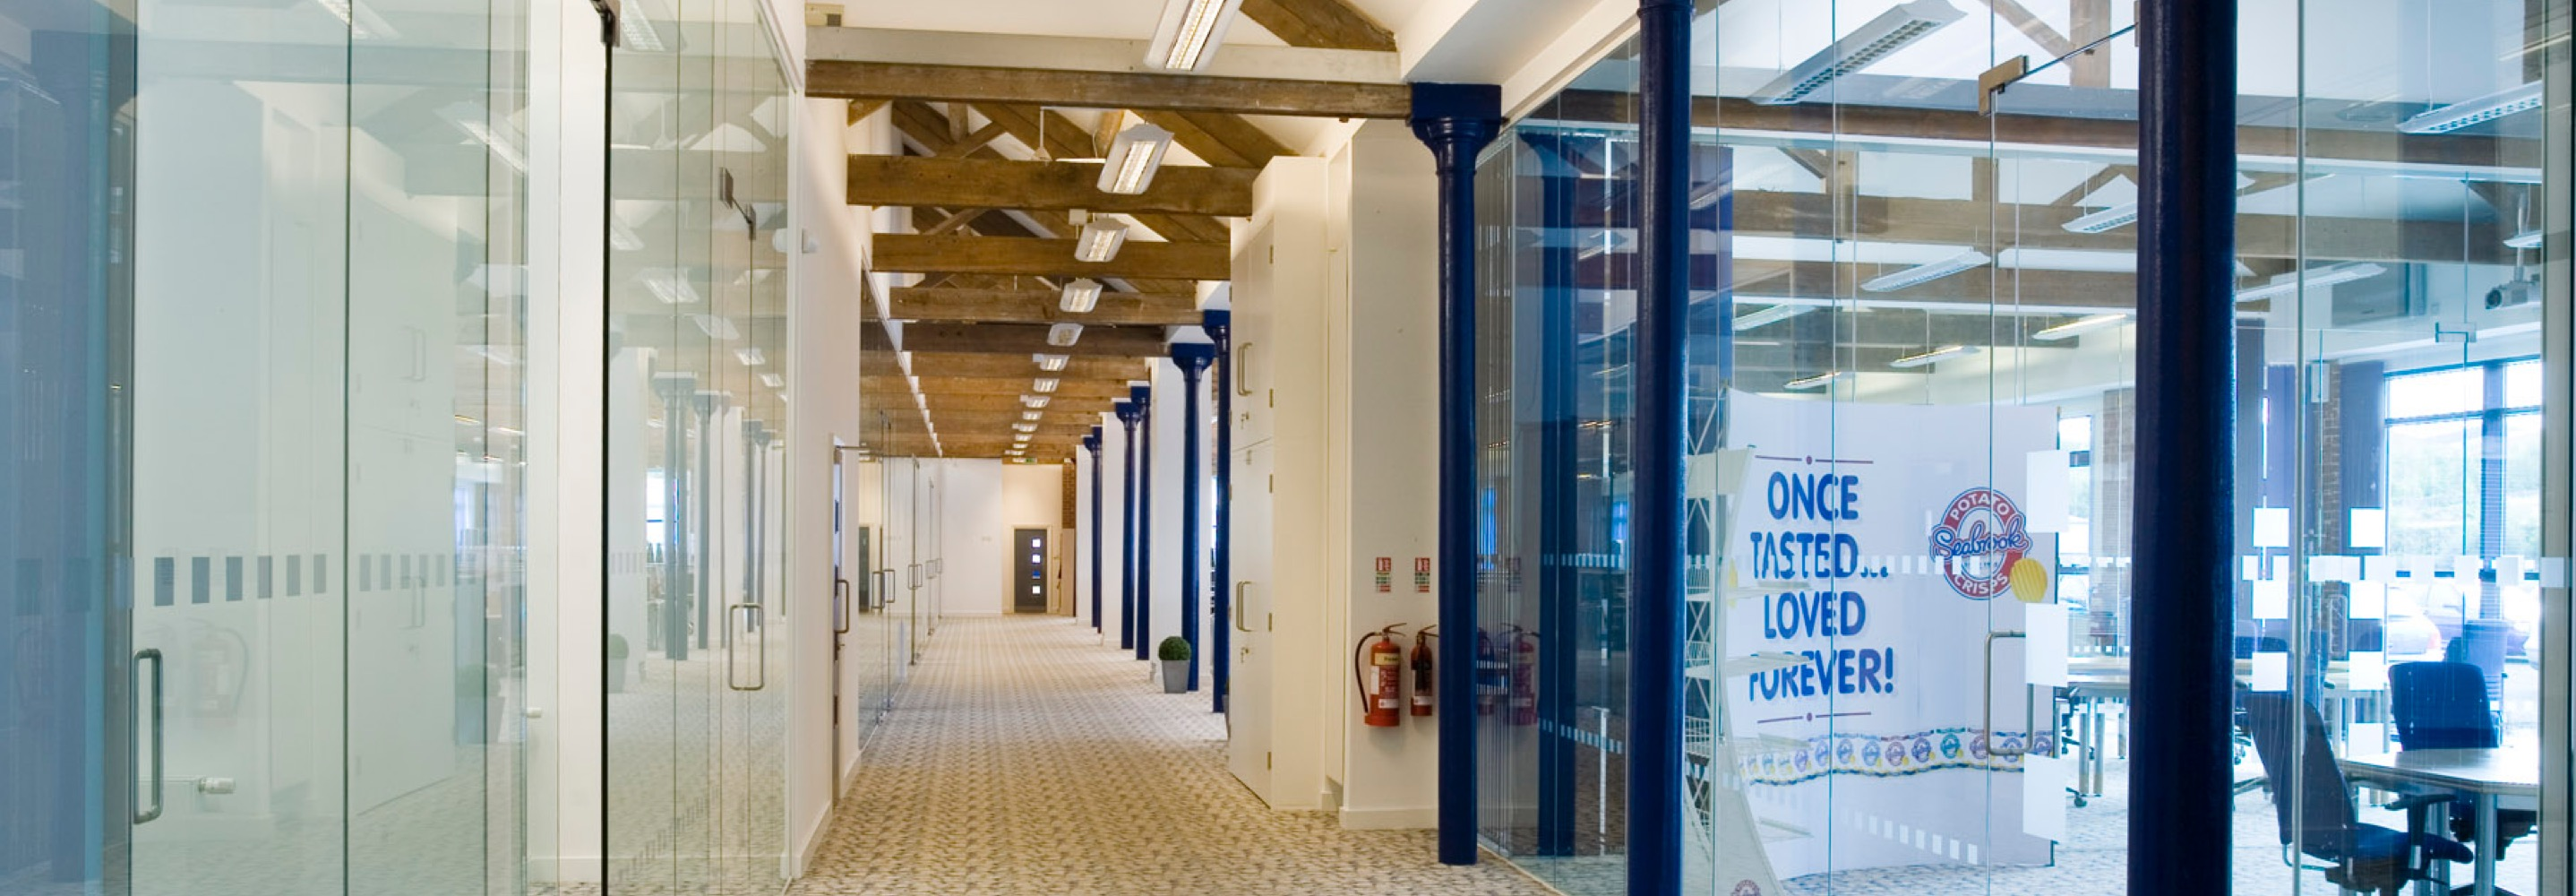 Corporate Interiors Design and Build - Quality and Accreditations - corridor in vaulted beamed office